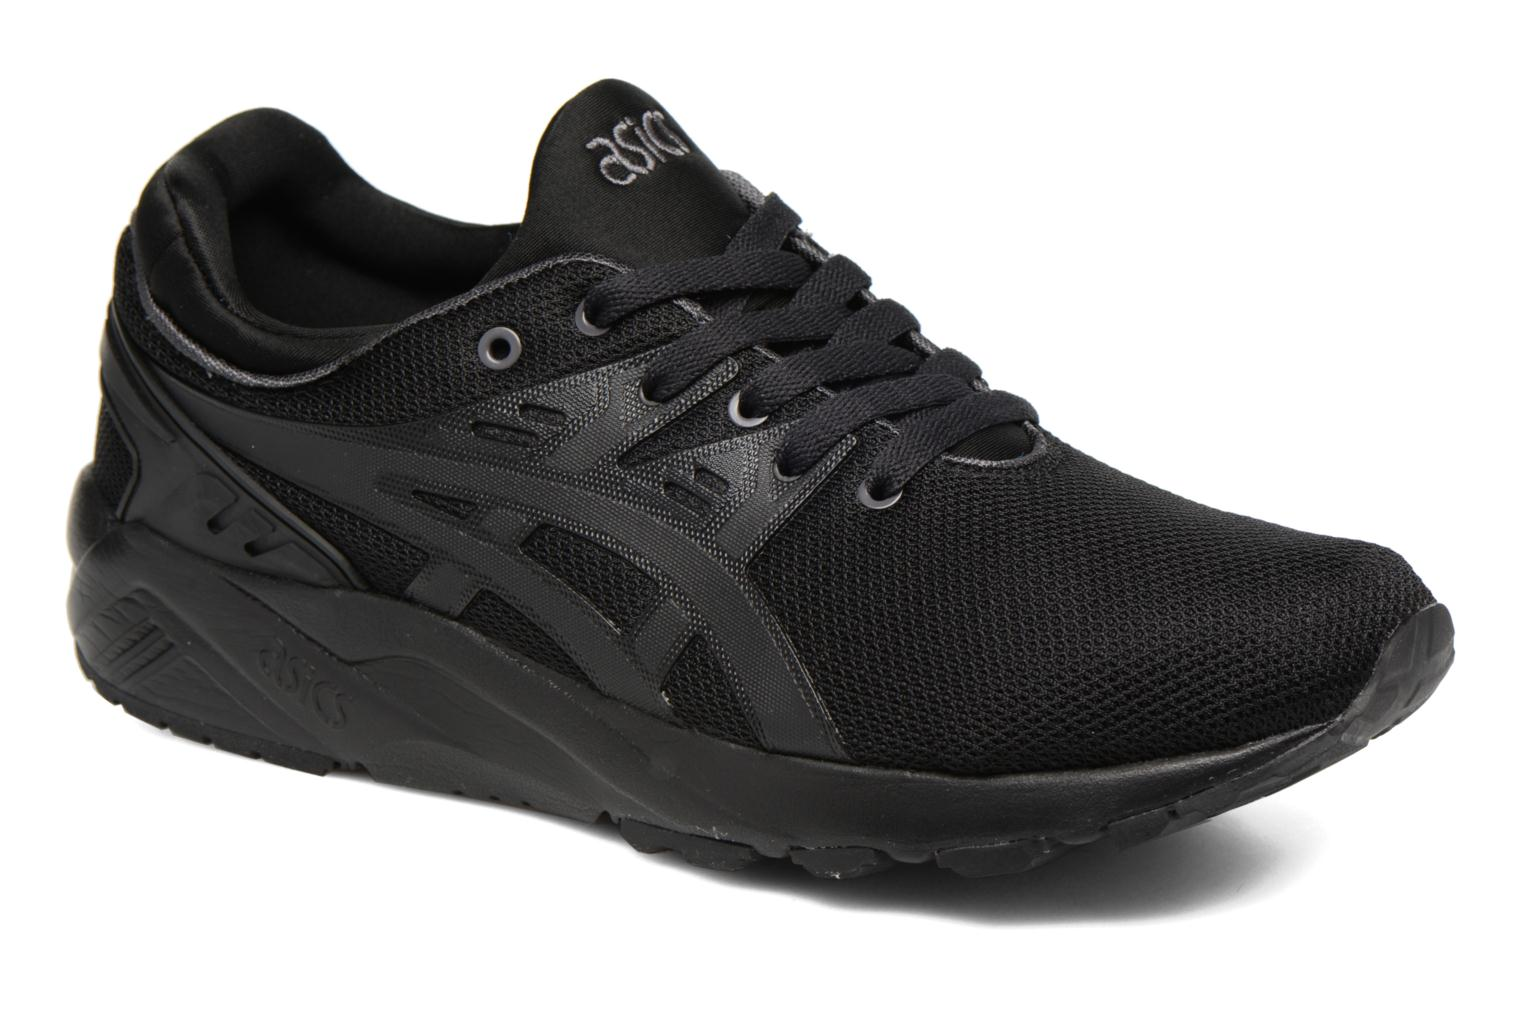 Gel-Kayano Trainer Evo Black Black